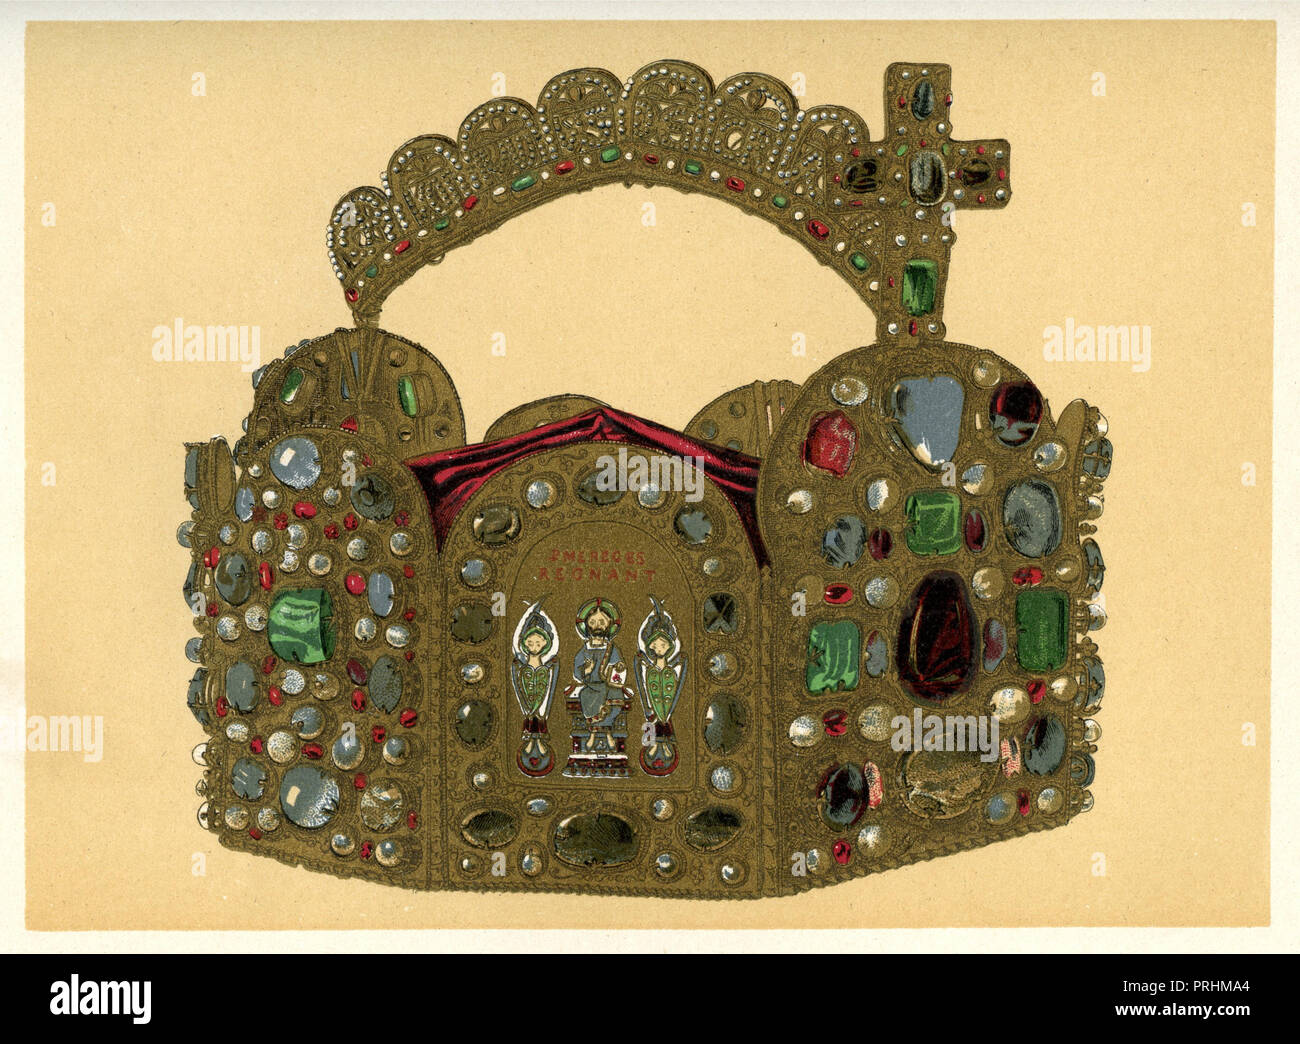 The German imperial crown. Corona aurea. Imperial Crown of Kings and Emperors of the Holy Roman Empire since the High Middle Ages,    1899 Stock Photo